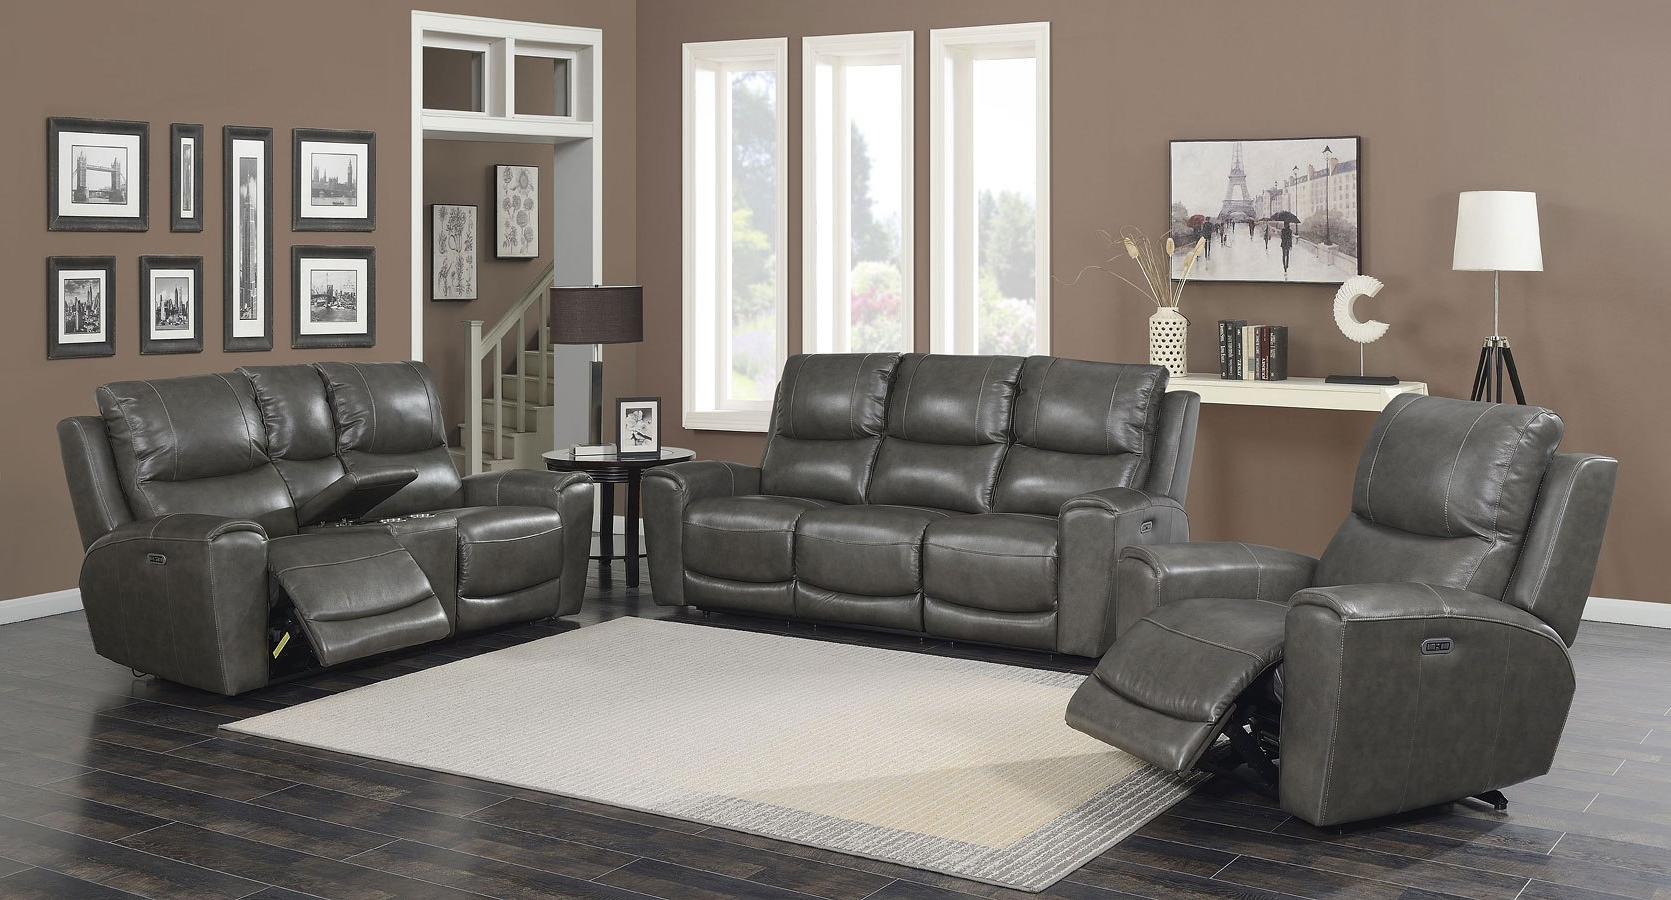 Laurel Gray Sofas For Well Known Laurel Power Reclining Living Room Set (grey) Steve Silver (View 7 of 20)